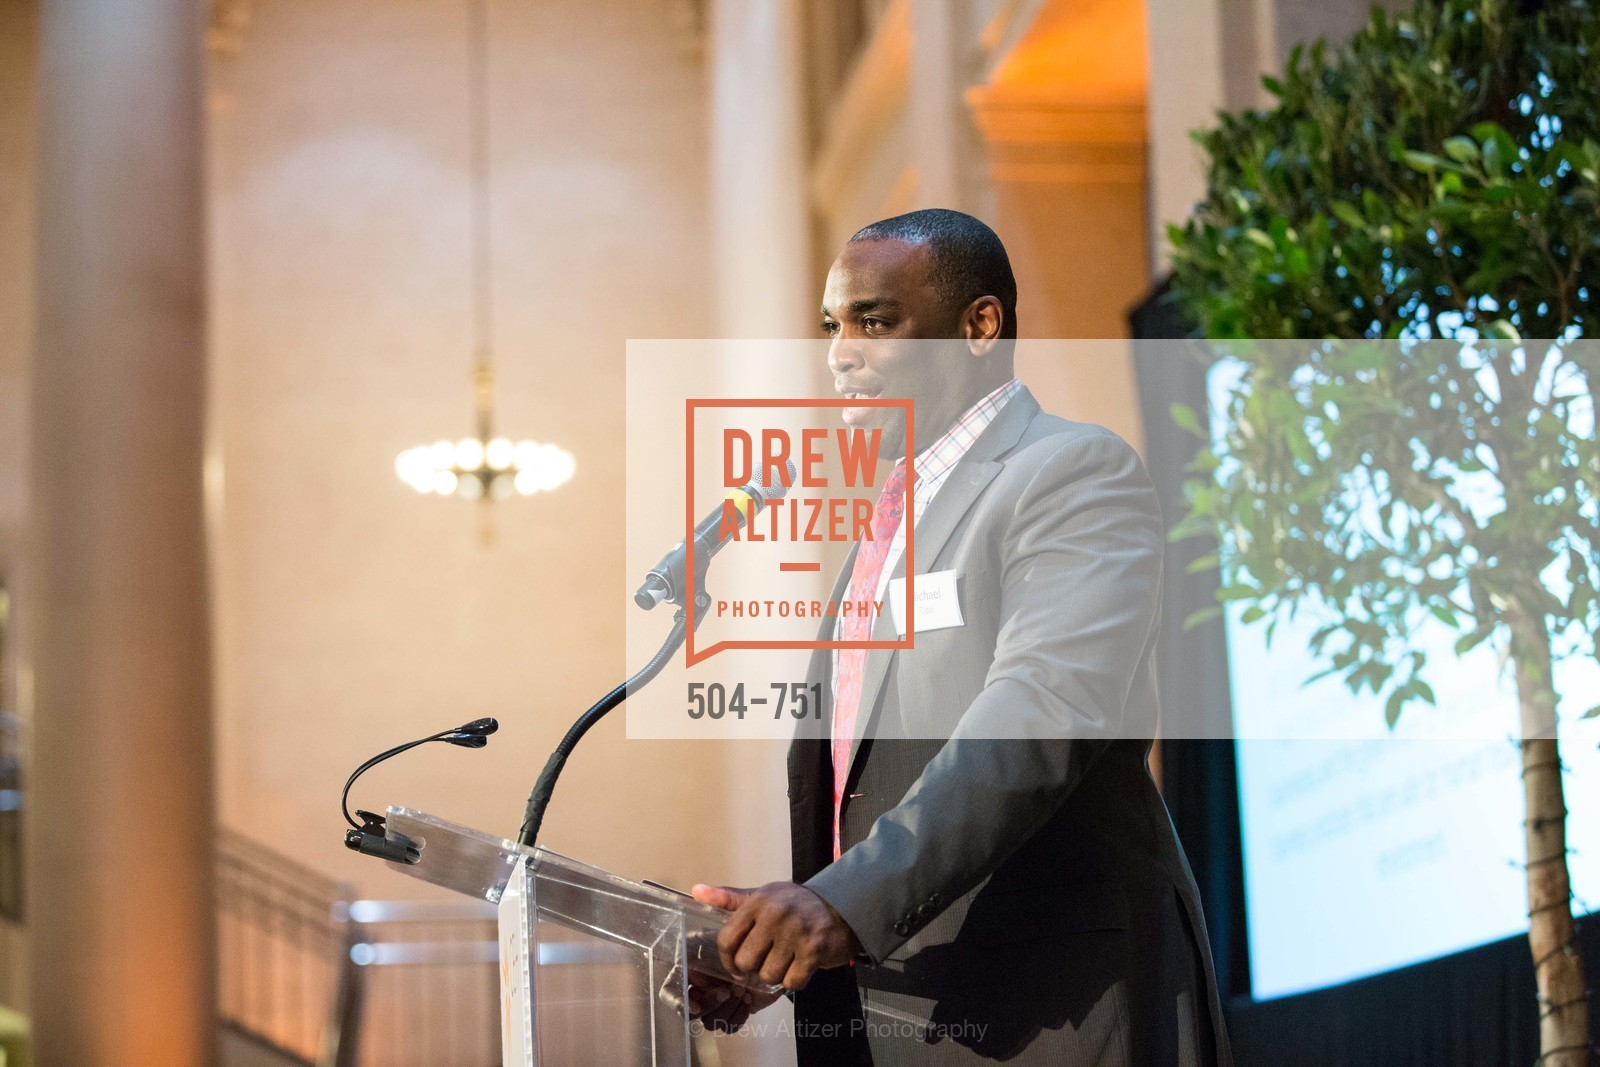 Michael Tate, CENTER FOR ENVIRONMENTAL HEALTH (CEH) 2015 Gala, US, May 28th, 2015,Drew Altizer, Drew Altizer Photography, full-service agency, private events, San Francisco photographer, photographer california